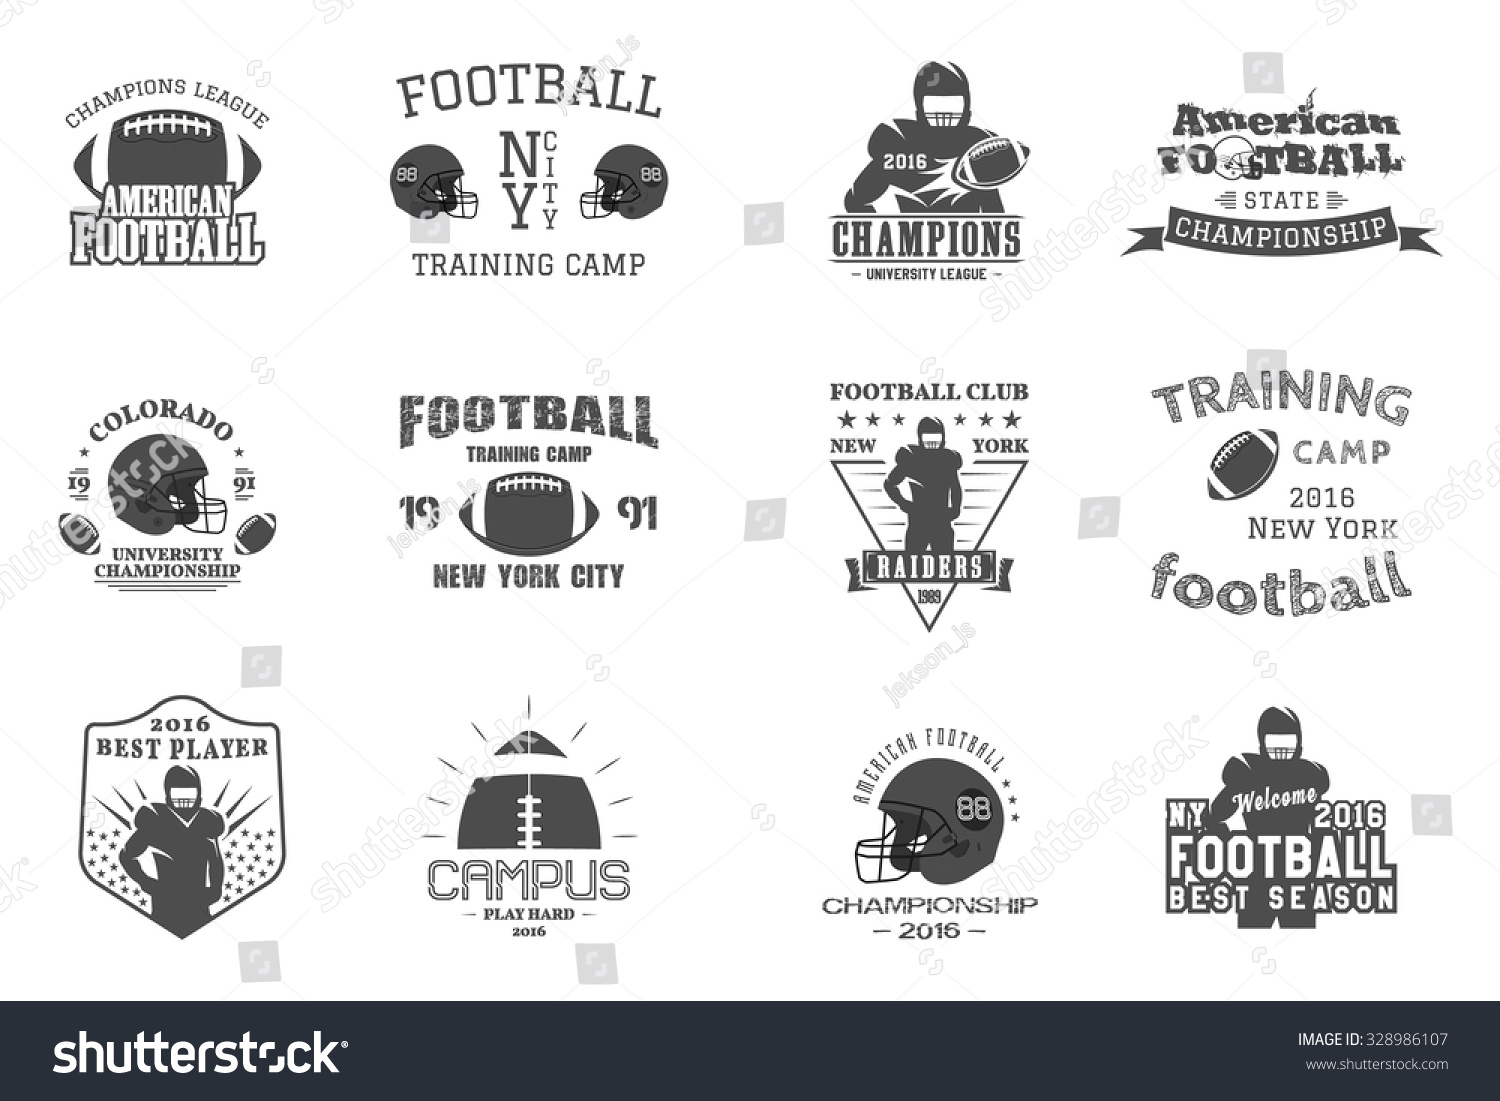 College rugby american football team campus stock vector American football style t shirts